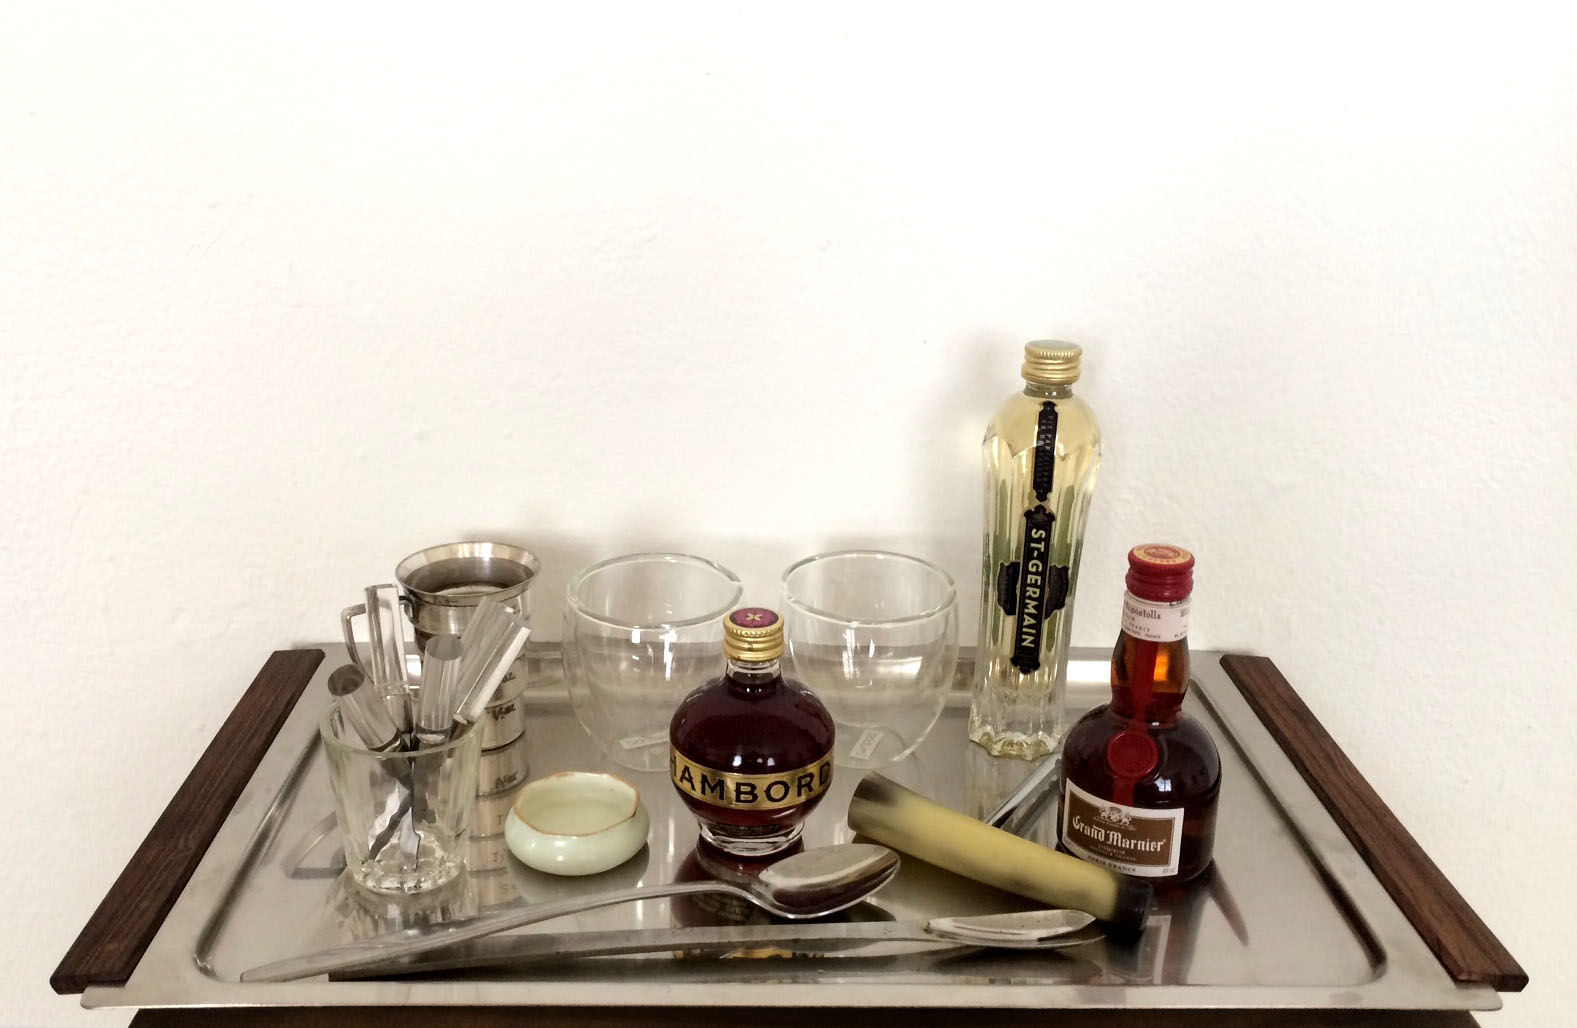 "#22: Midcentury stainless tray with rosewood handles (Denmark), Bodum espresso cups, sterling measuring cup, acrylic and silver hors d'oeuvres forks, enamel salt cellar (Vienna), and bone-handled corkscrew. 3"" x 15"" x 8.5"" (SOLD)"